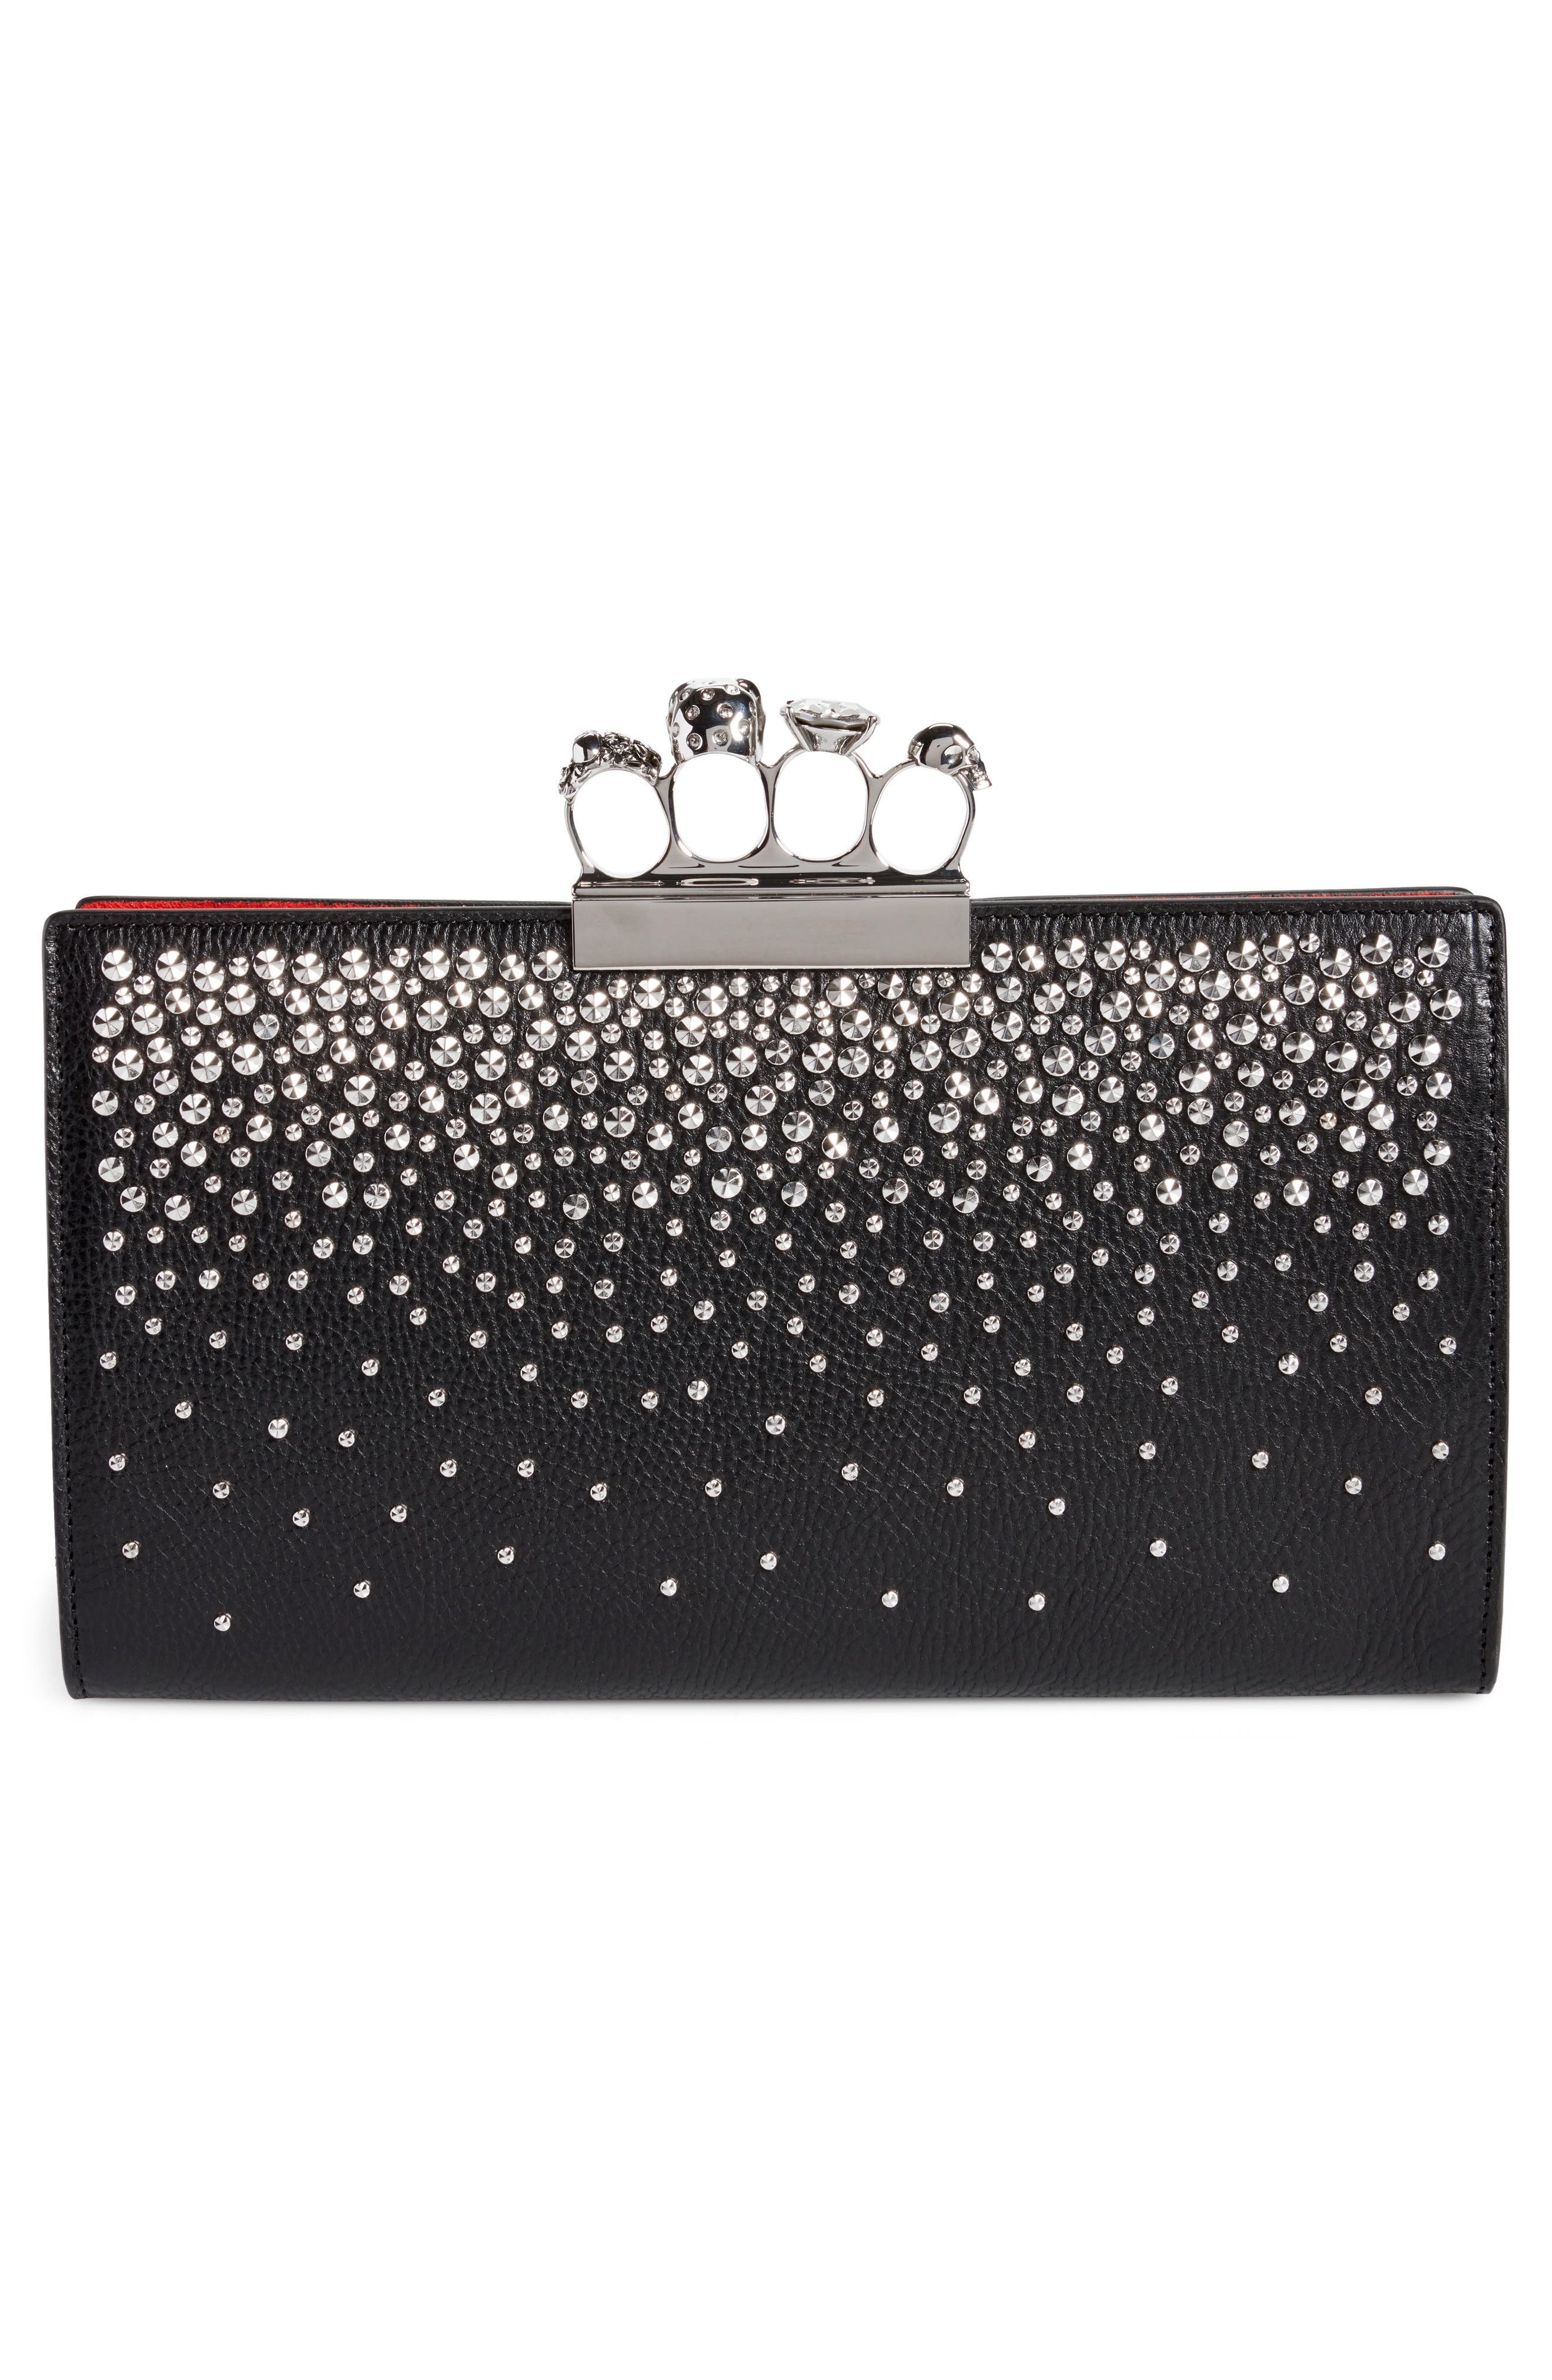 Alternate Image 3  - Alexander McQueen Studded Knuckle Clasp Leather Clutch